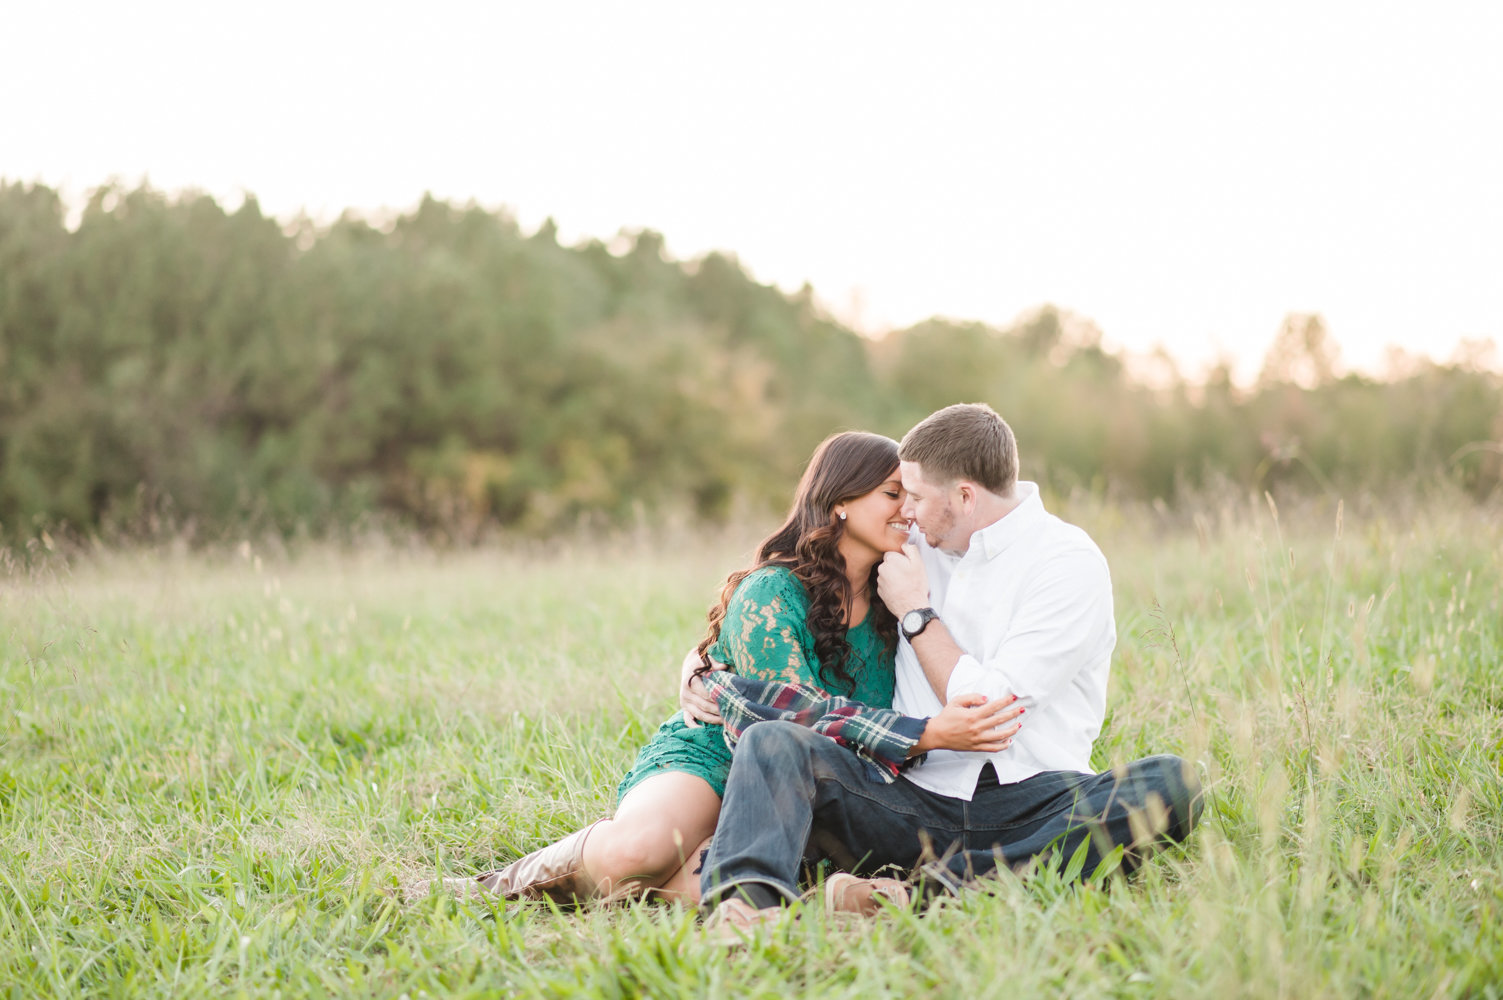 engagement-portraits-christina-forbes-photography-7